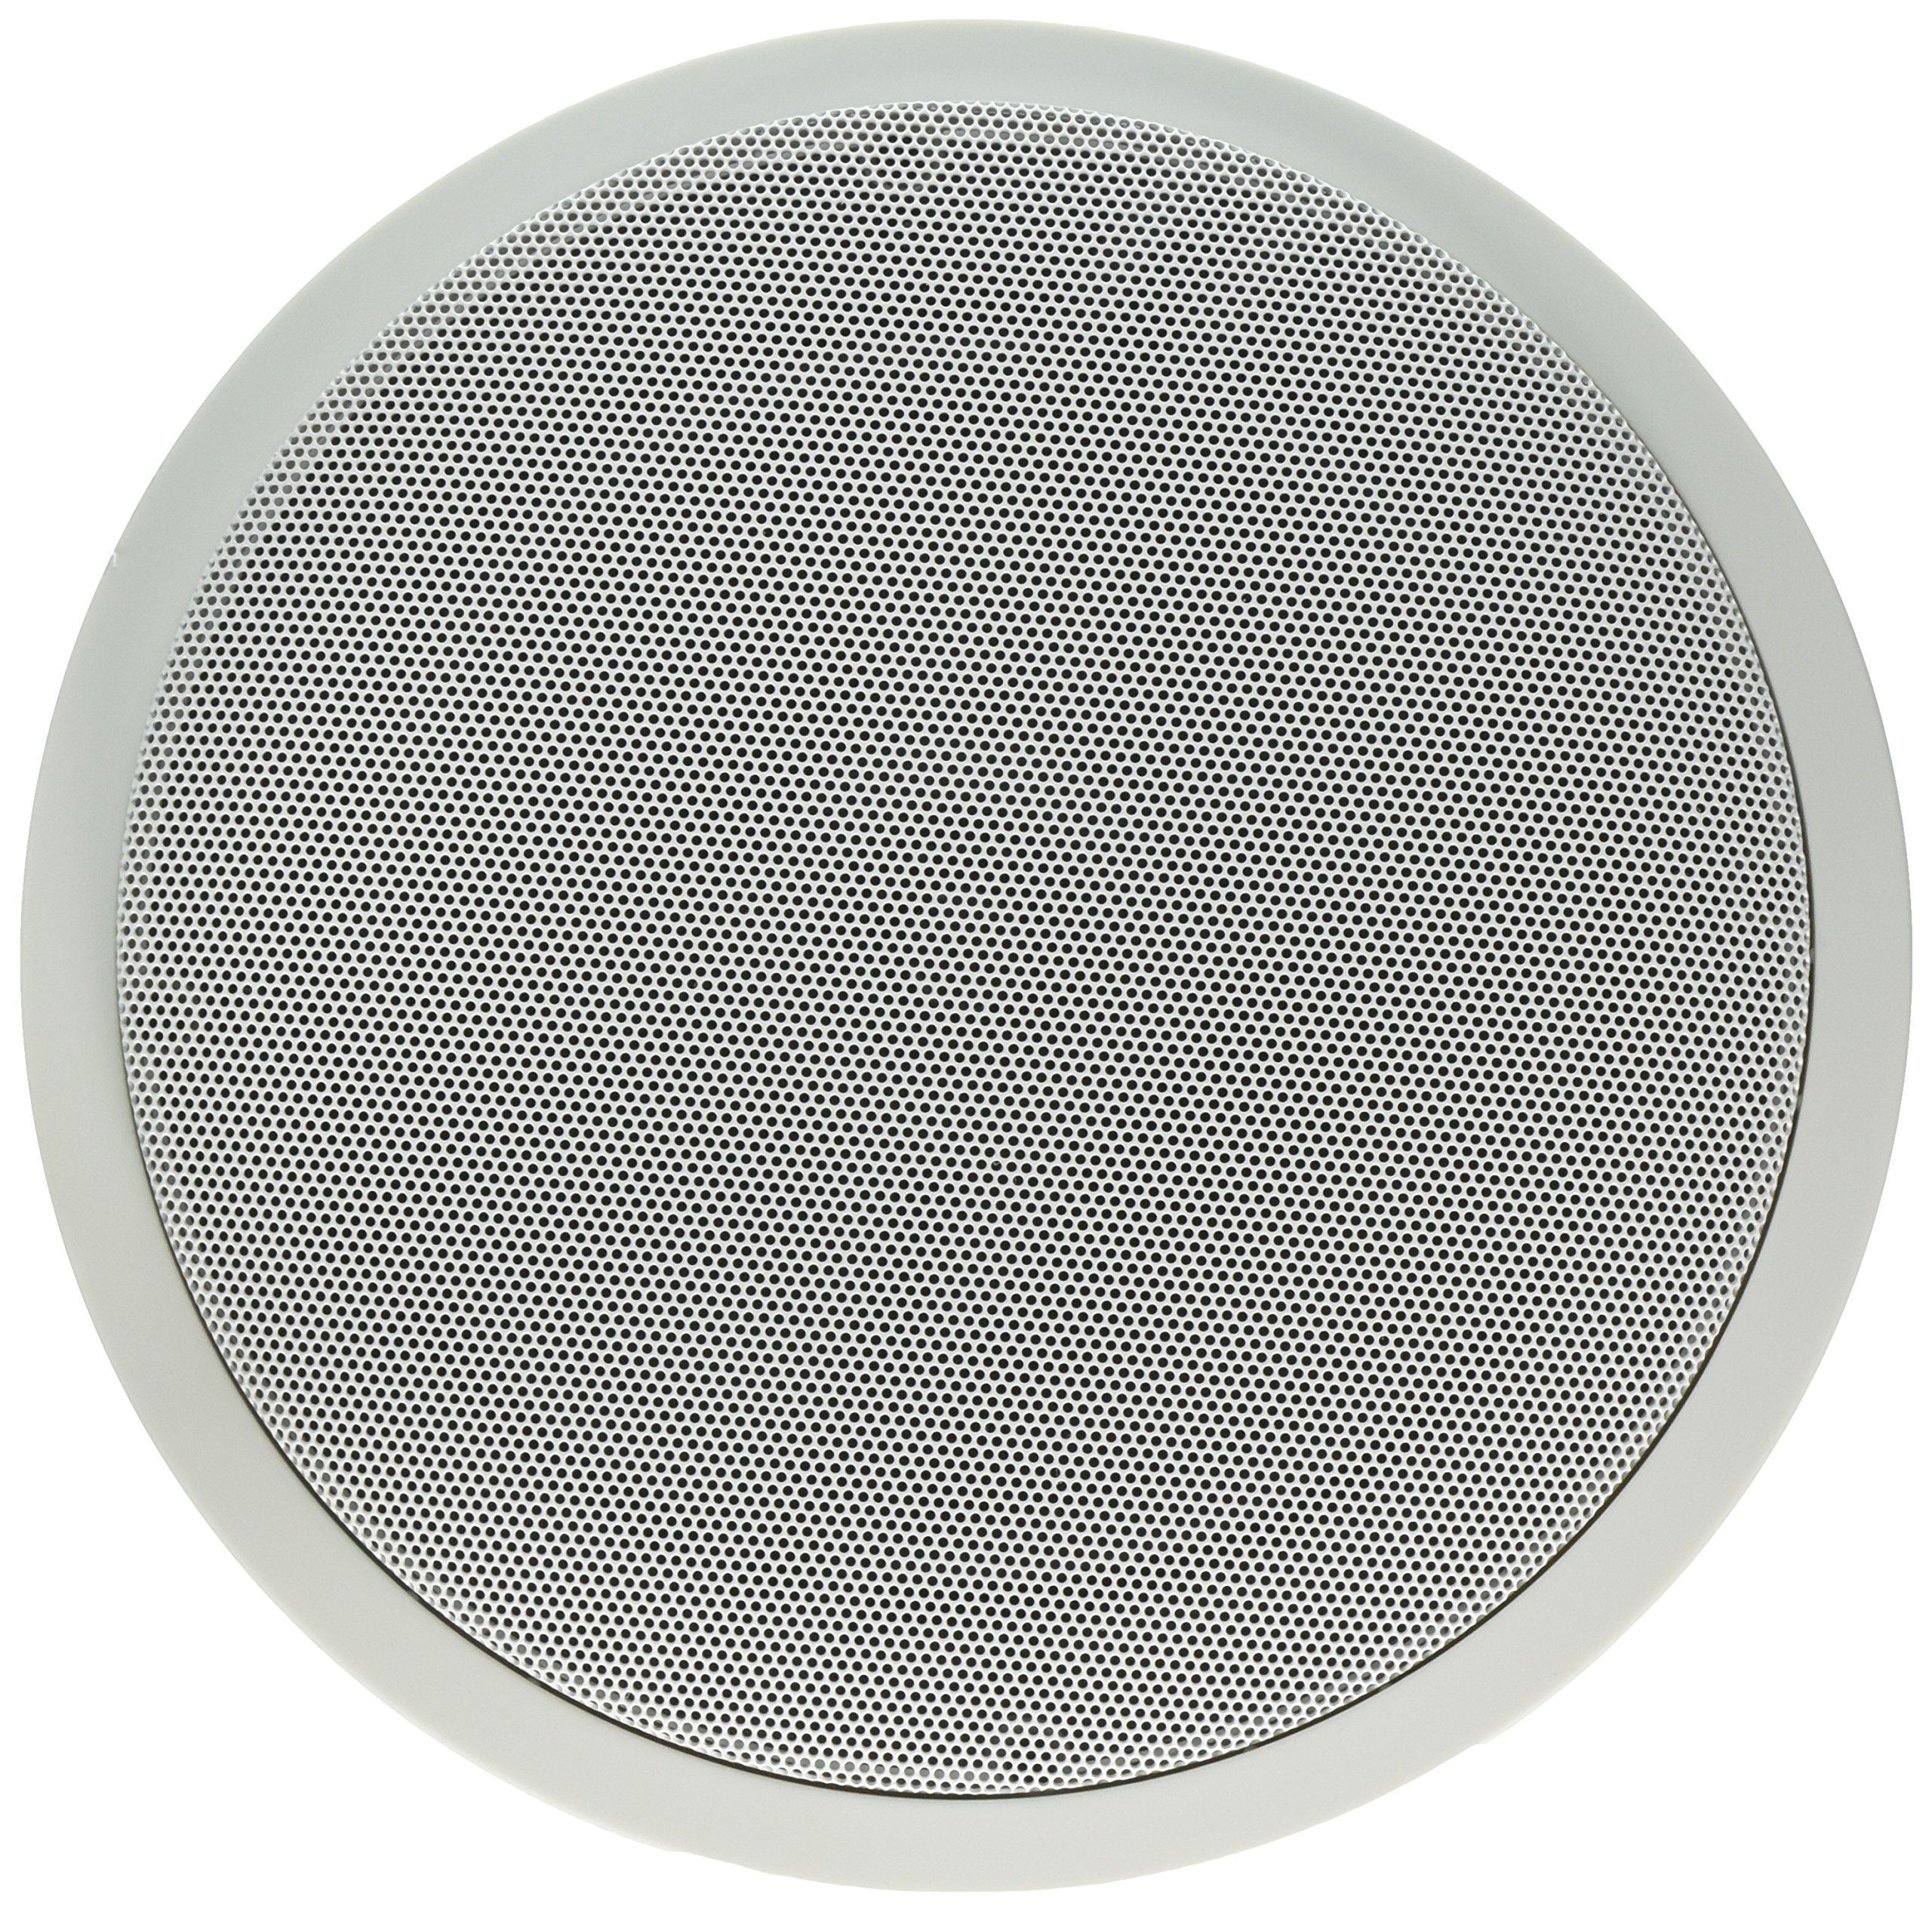 Yamaha NSIW360C 2-Way In-Ceiling Speaker System, White (2 Speakers) by Yamaha Audio